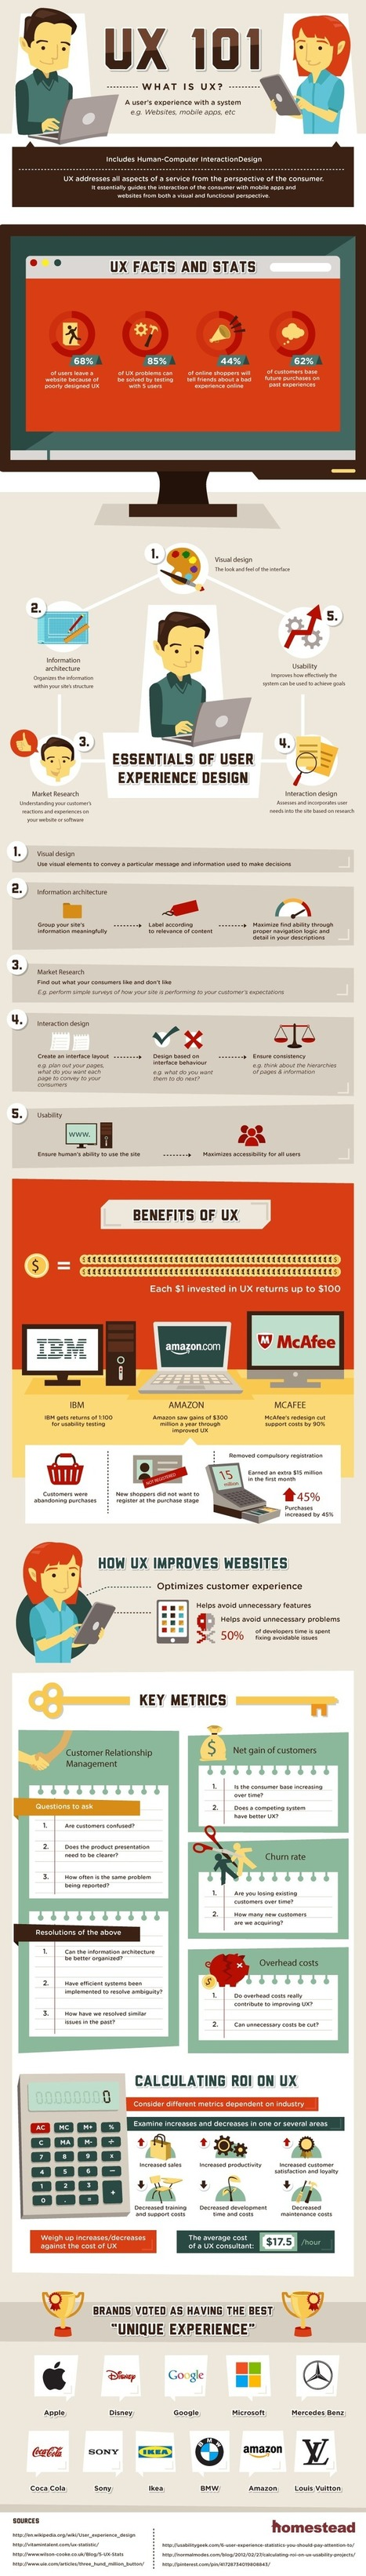 UX 101: What Is User Experience? [infographic] | Web mobile - UI Design - Html5-CSS3 | Scoop.it